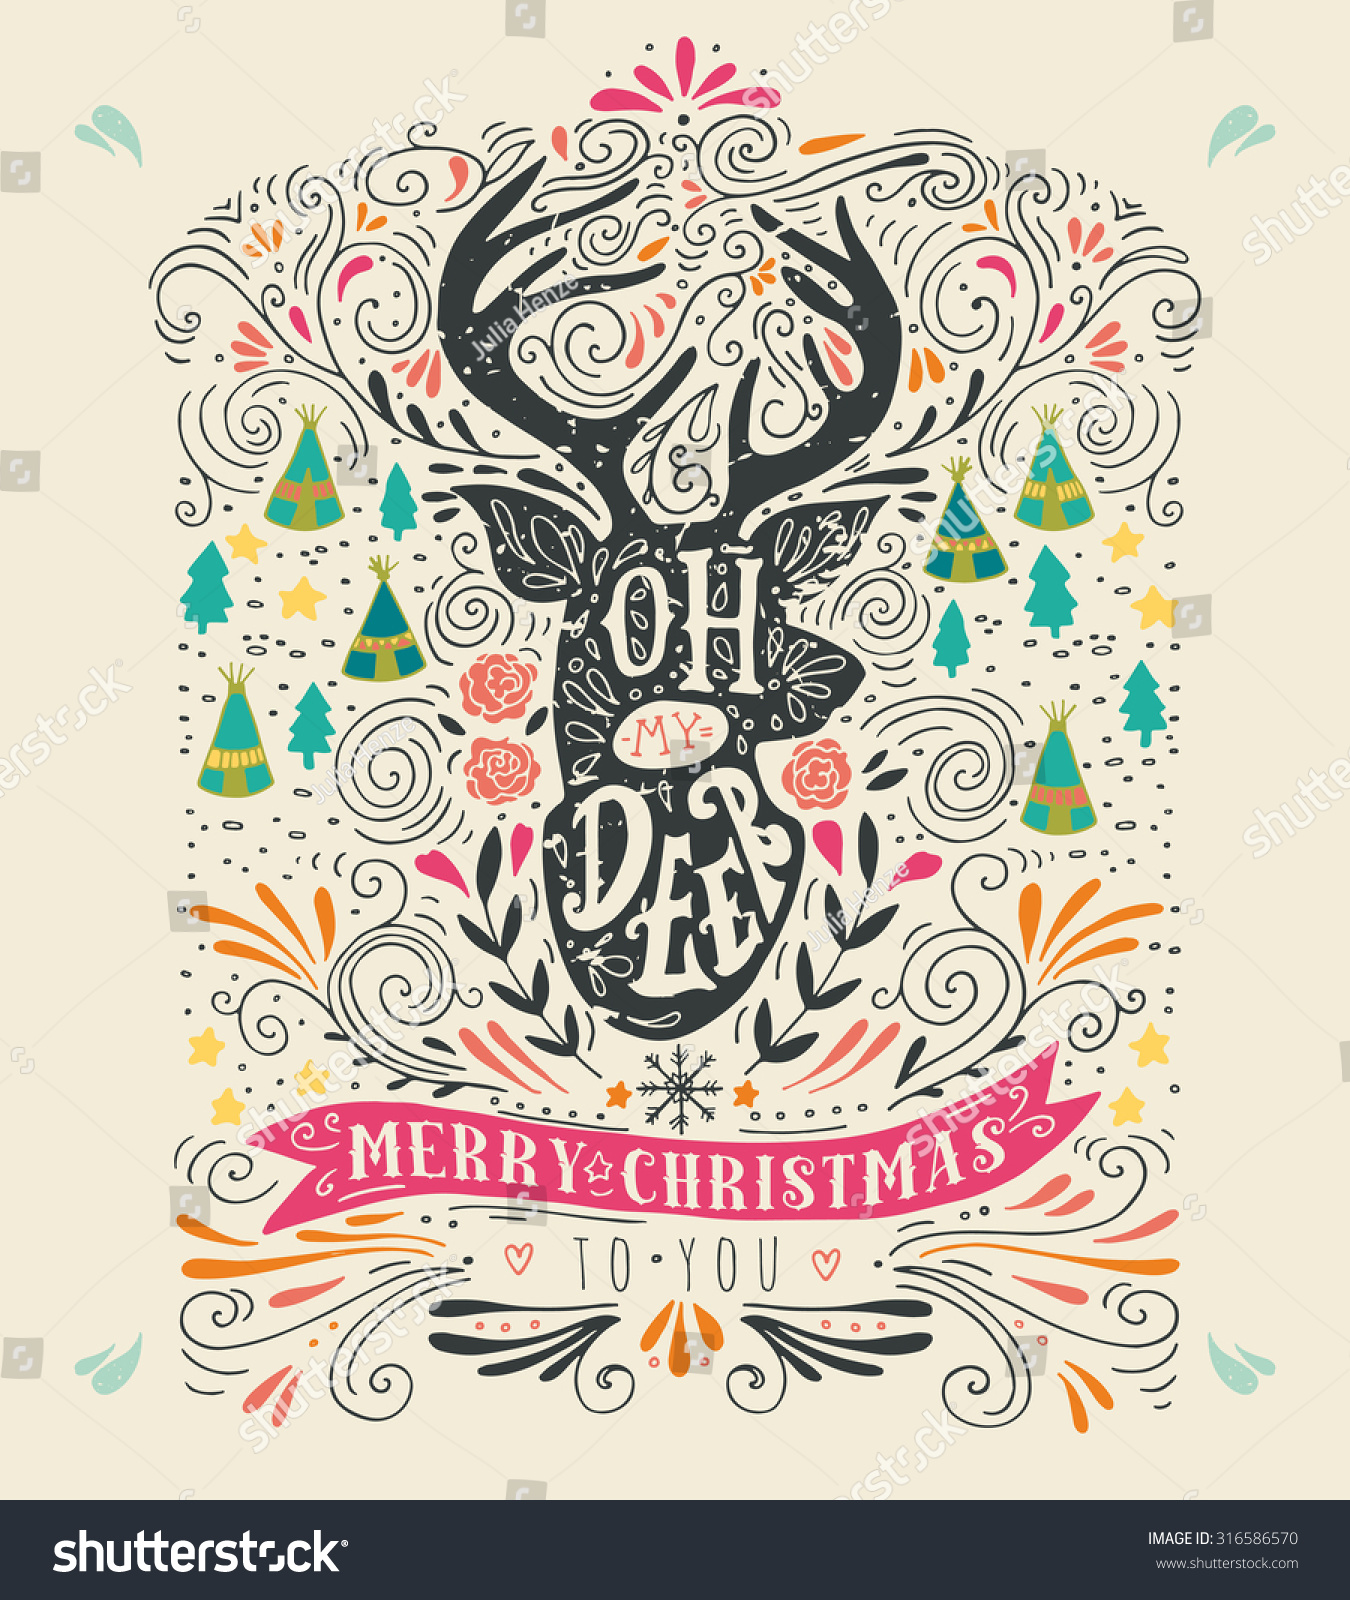 Vintage Merry Christmas.Oh My Deer Merry Christmas Vintage Stock Vector Royalty